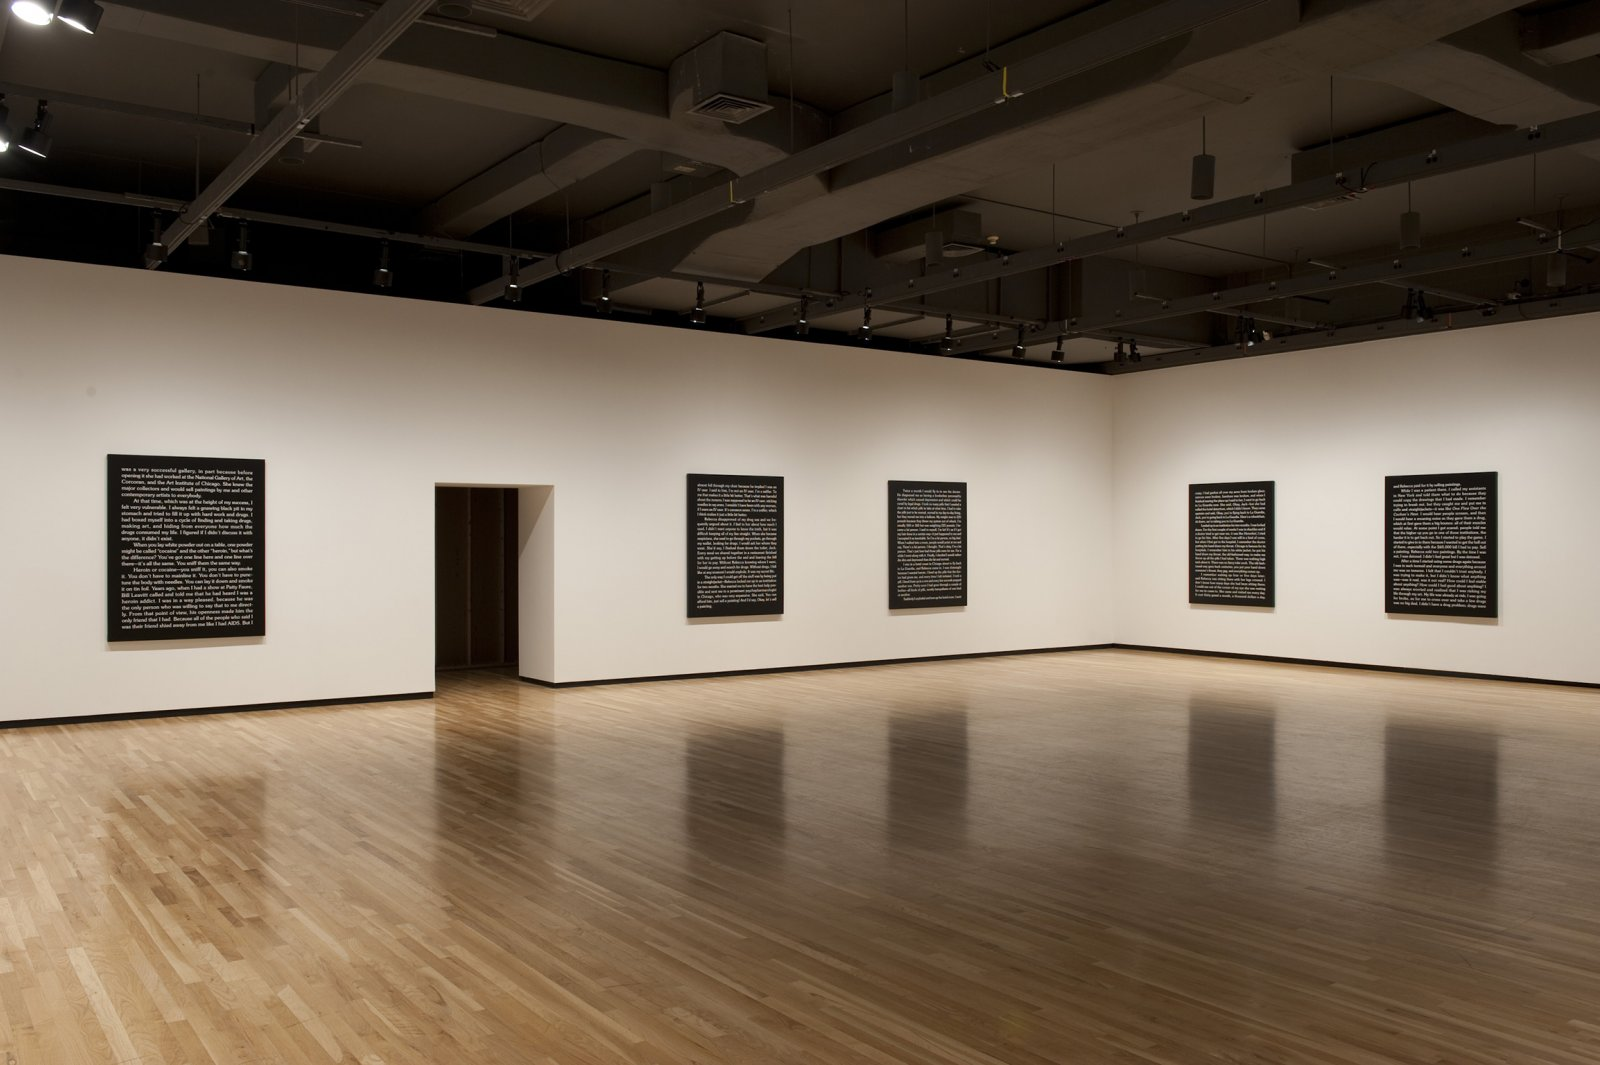 Ron Terada,Jack, 2010, acrylic on canvas, each 60 x 48 in. (152 x 122 cm). Installation view,Who I Think I Am, Walter Phillips Gallery, Banff, AB, 2010